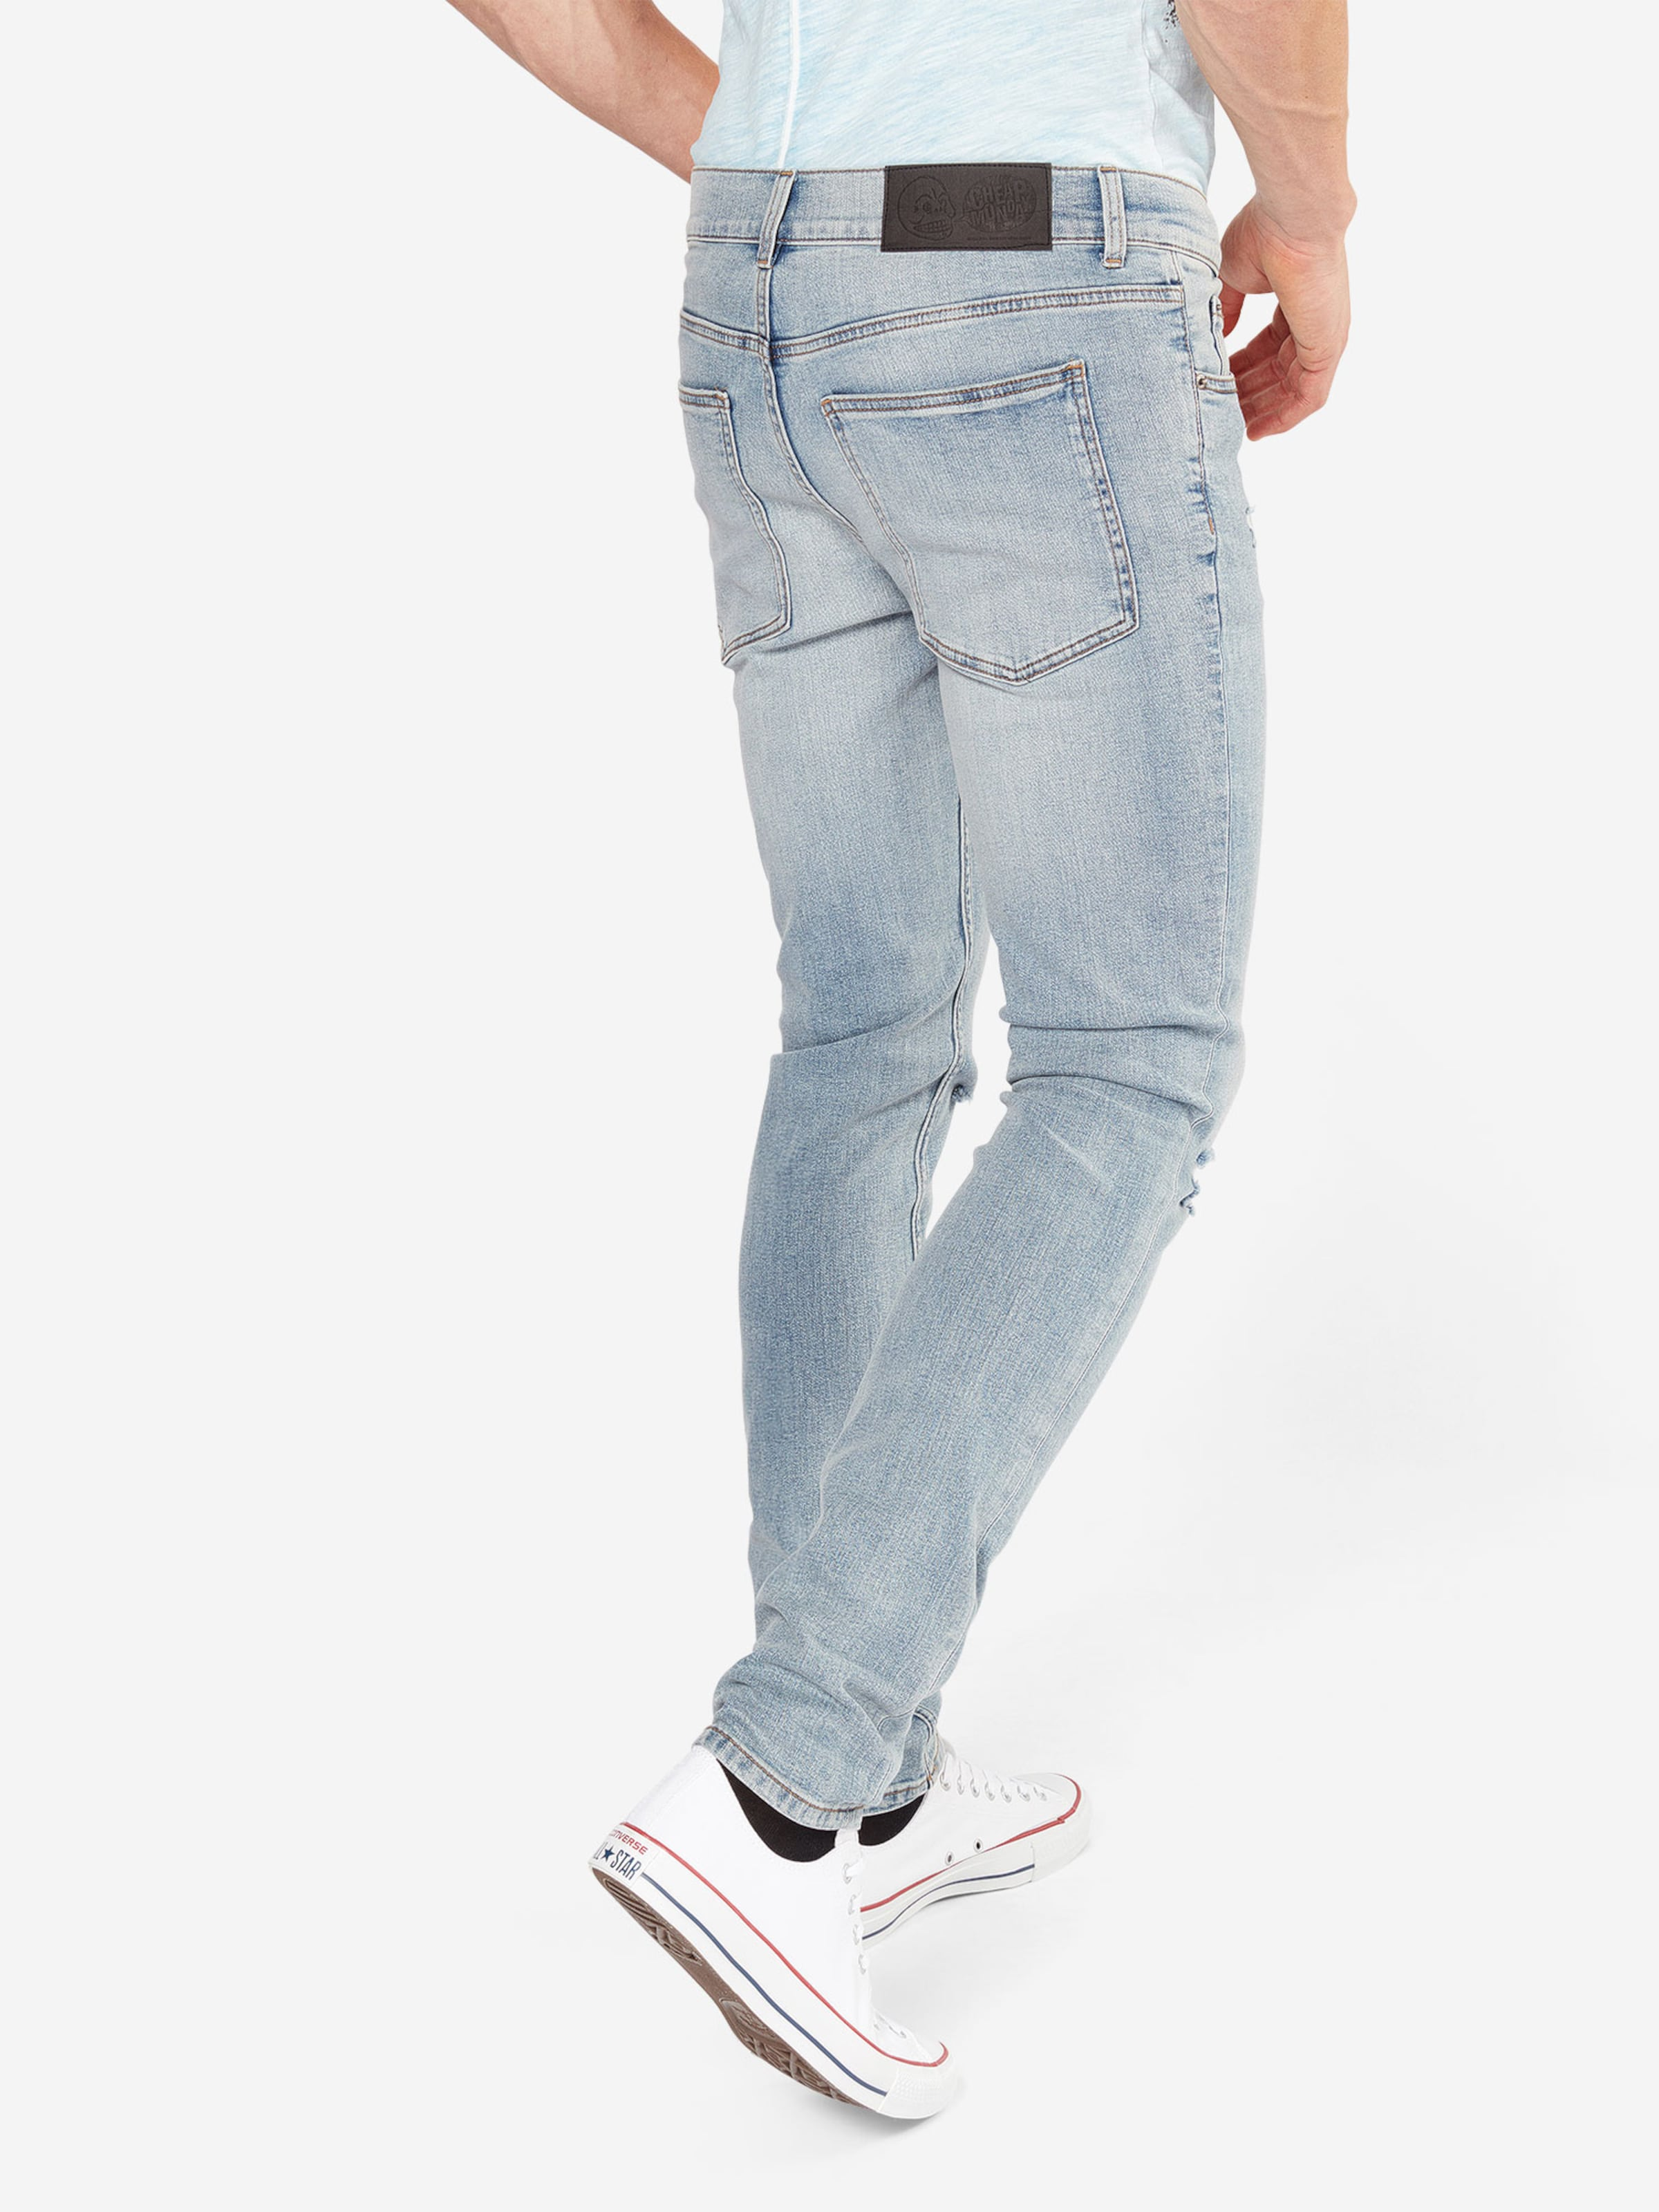 Günstig Versandkosten CHEAP MONDAY Jeans Tight Steckdose Mit Paypal Um Billiges Countdown-Paket OOmw2Ozdq